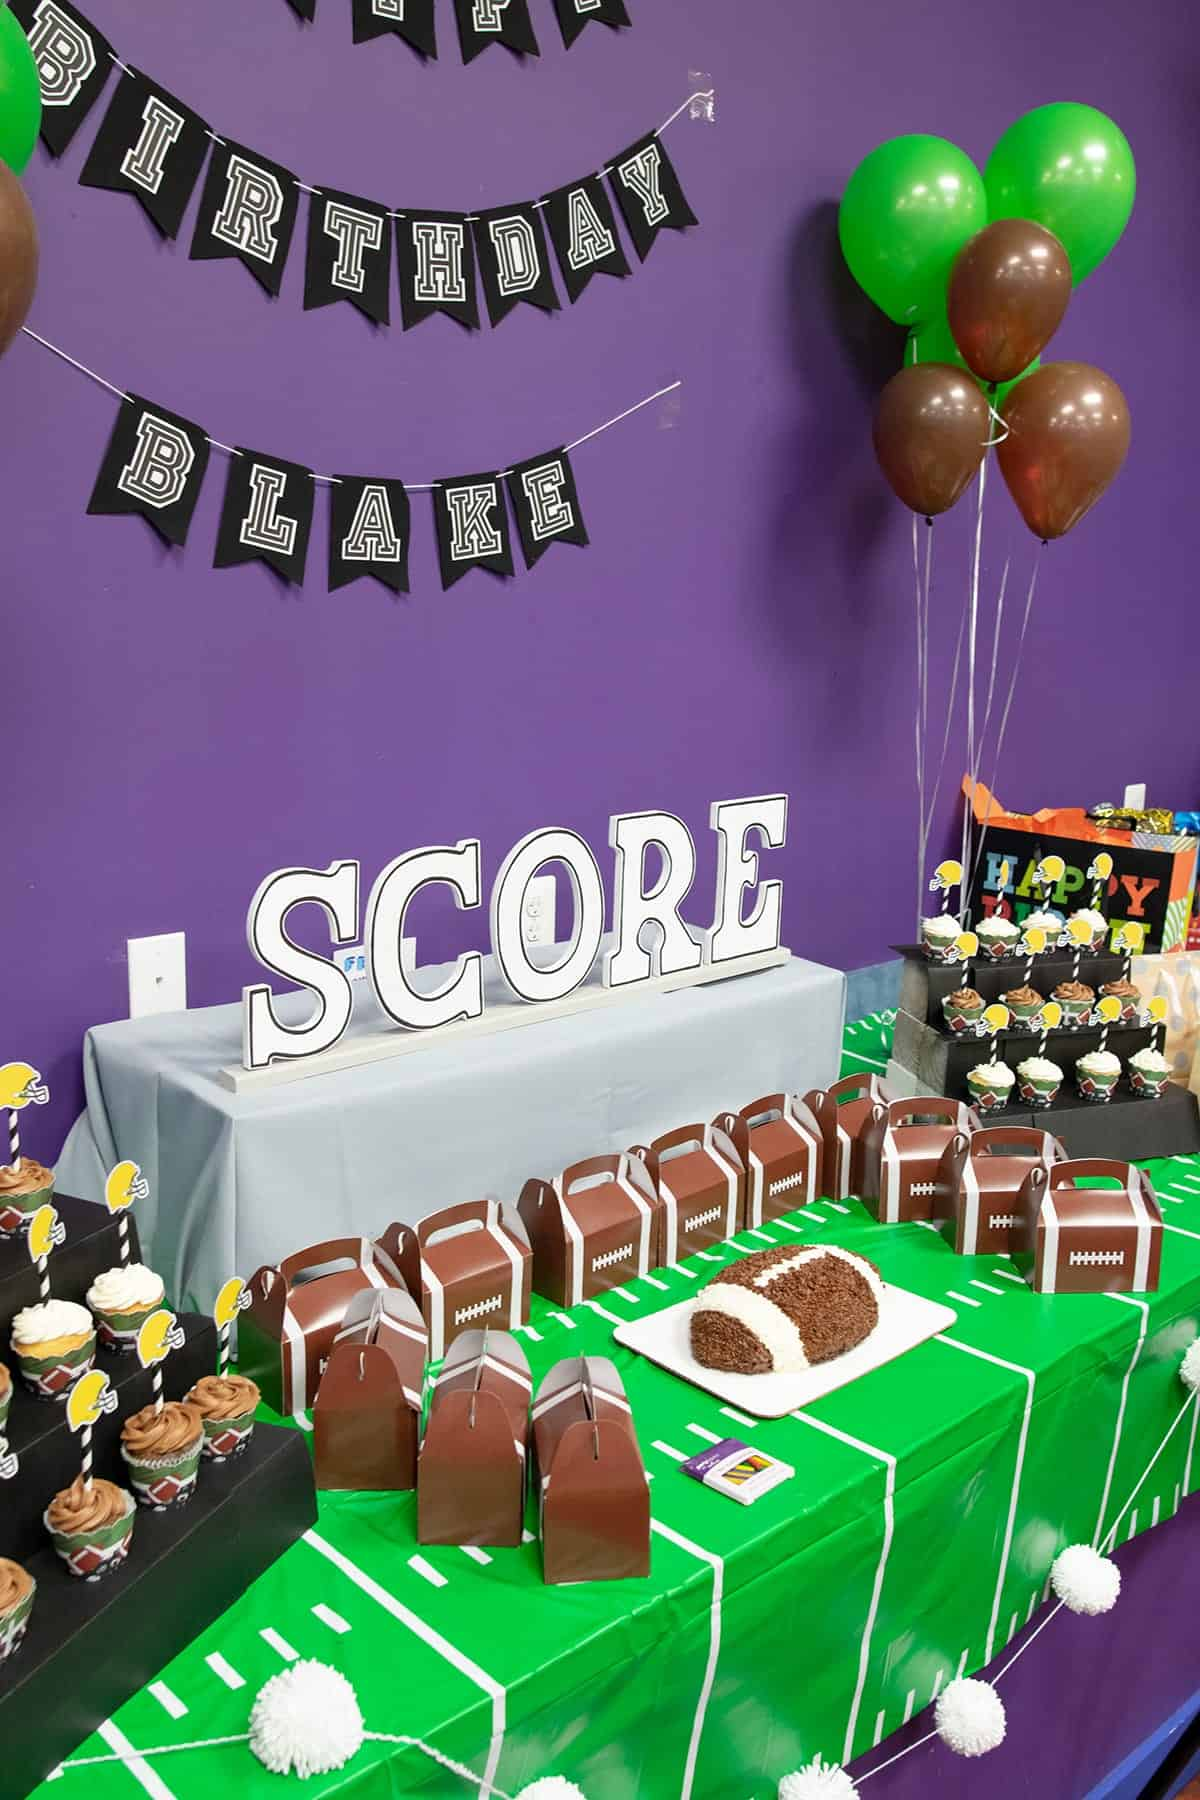 Football themed table with yard line tablecloth, football cake and cupcakes , balloons, and football party favors.